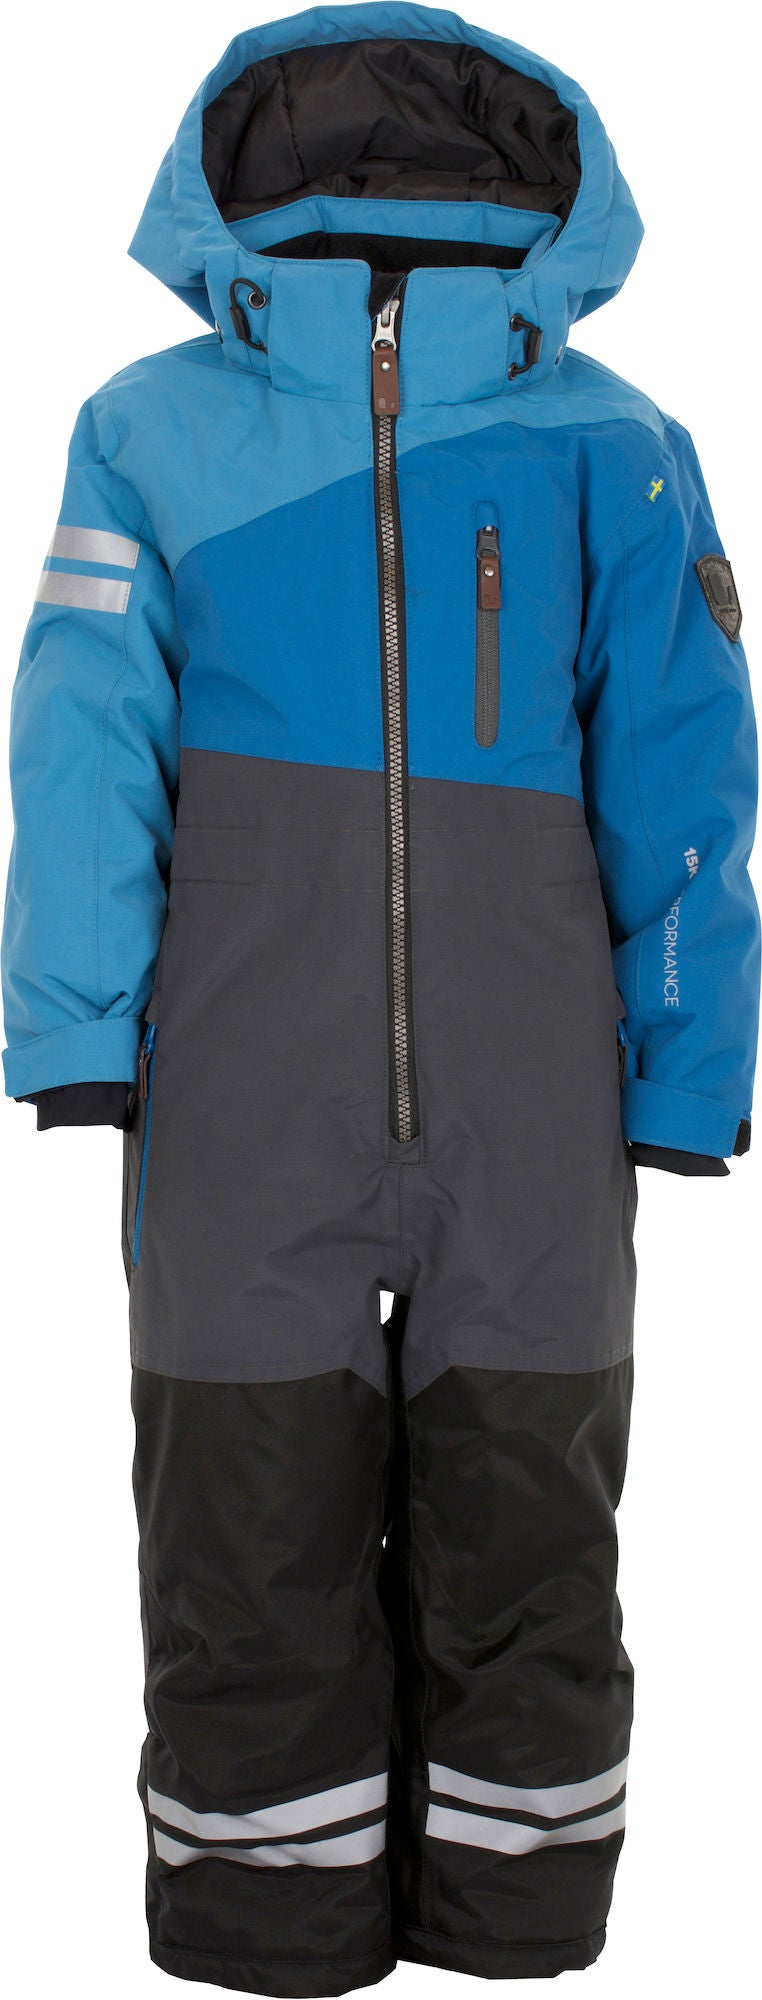 Lindberg Trysil Overall, Blue 80